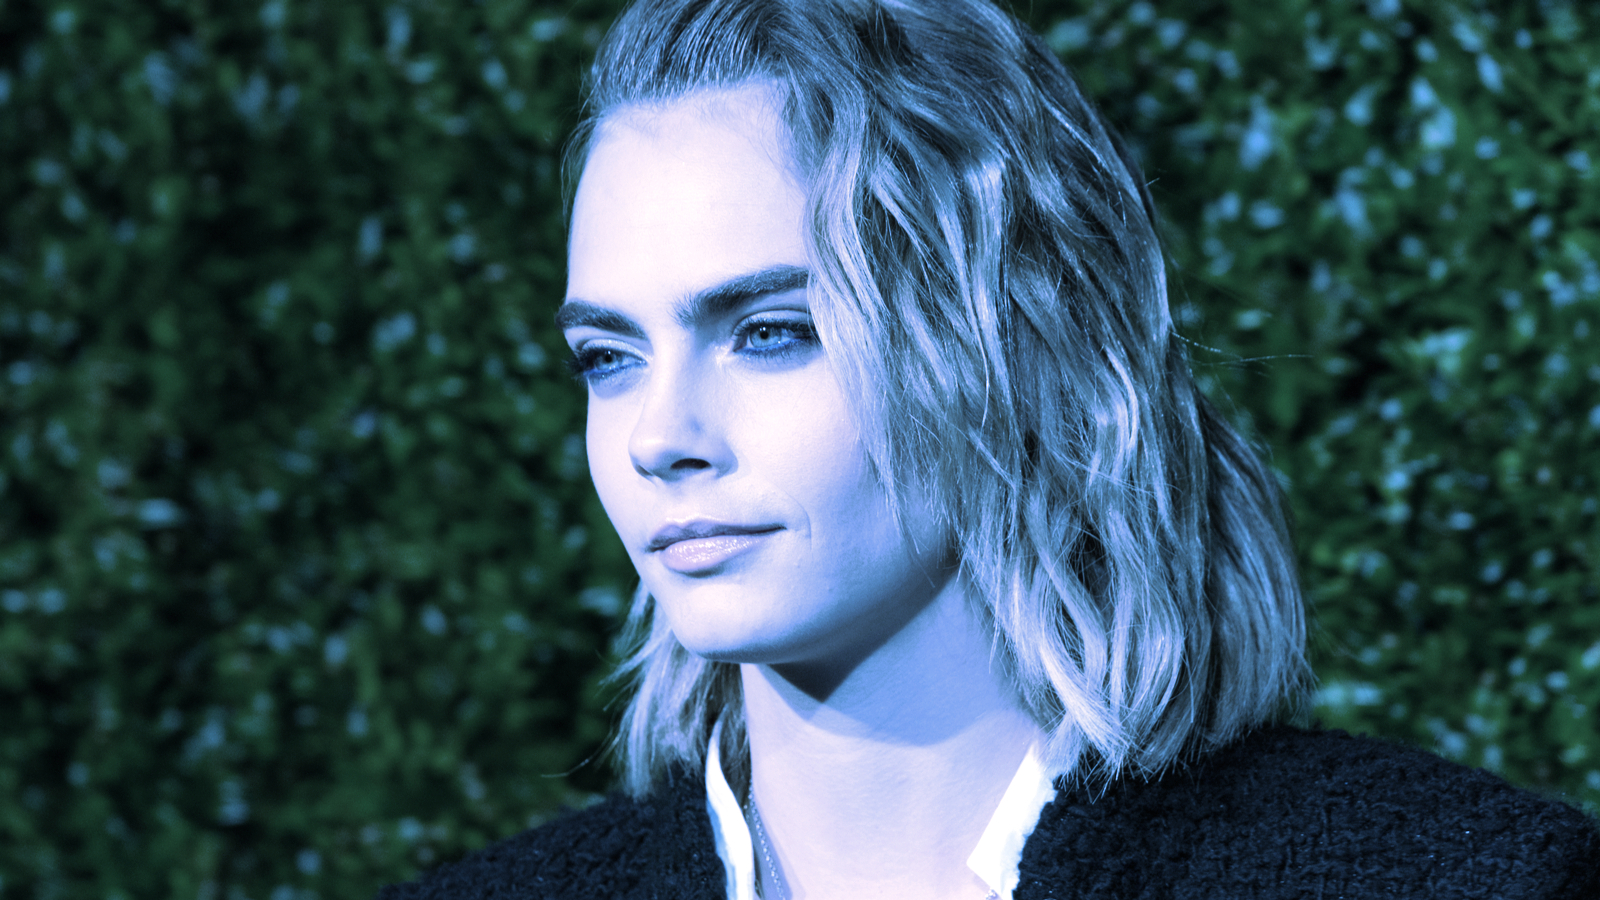 Cara Delevingne Sells Clip About Her Vagina As Bitcoin-Powered NFT